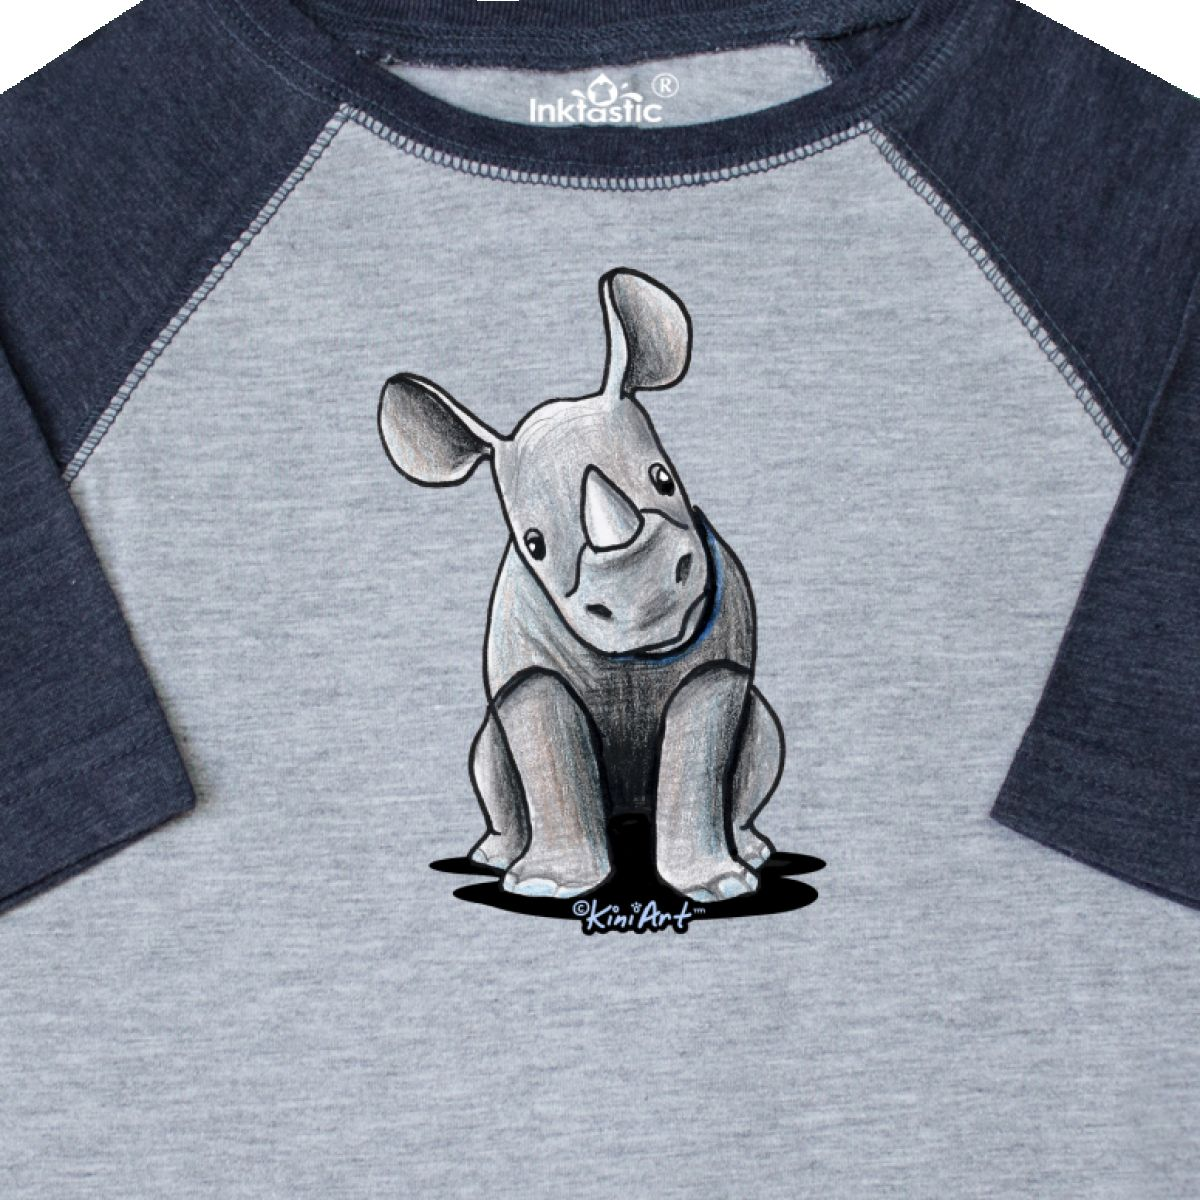 Inktastic-Curious-Rhinos-Toddler-T-Shirt-KiniArt-Rhino-Rhinoceros-Art-Cartoon thumbnail 10